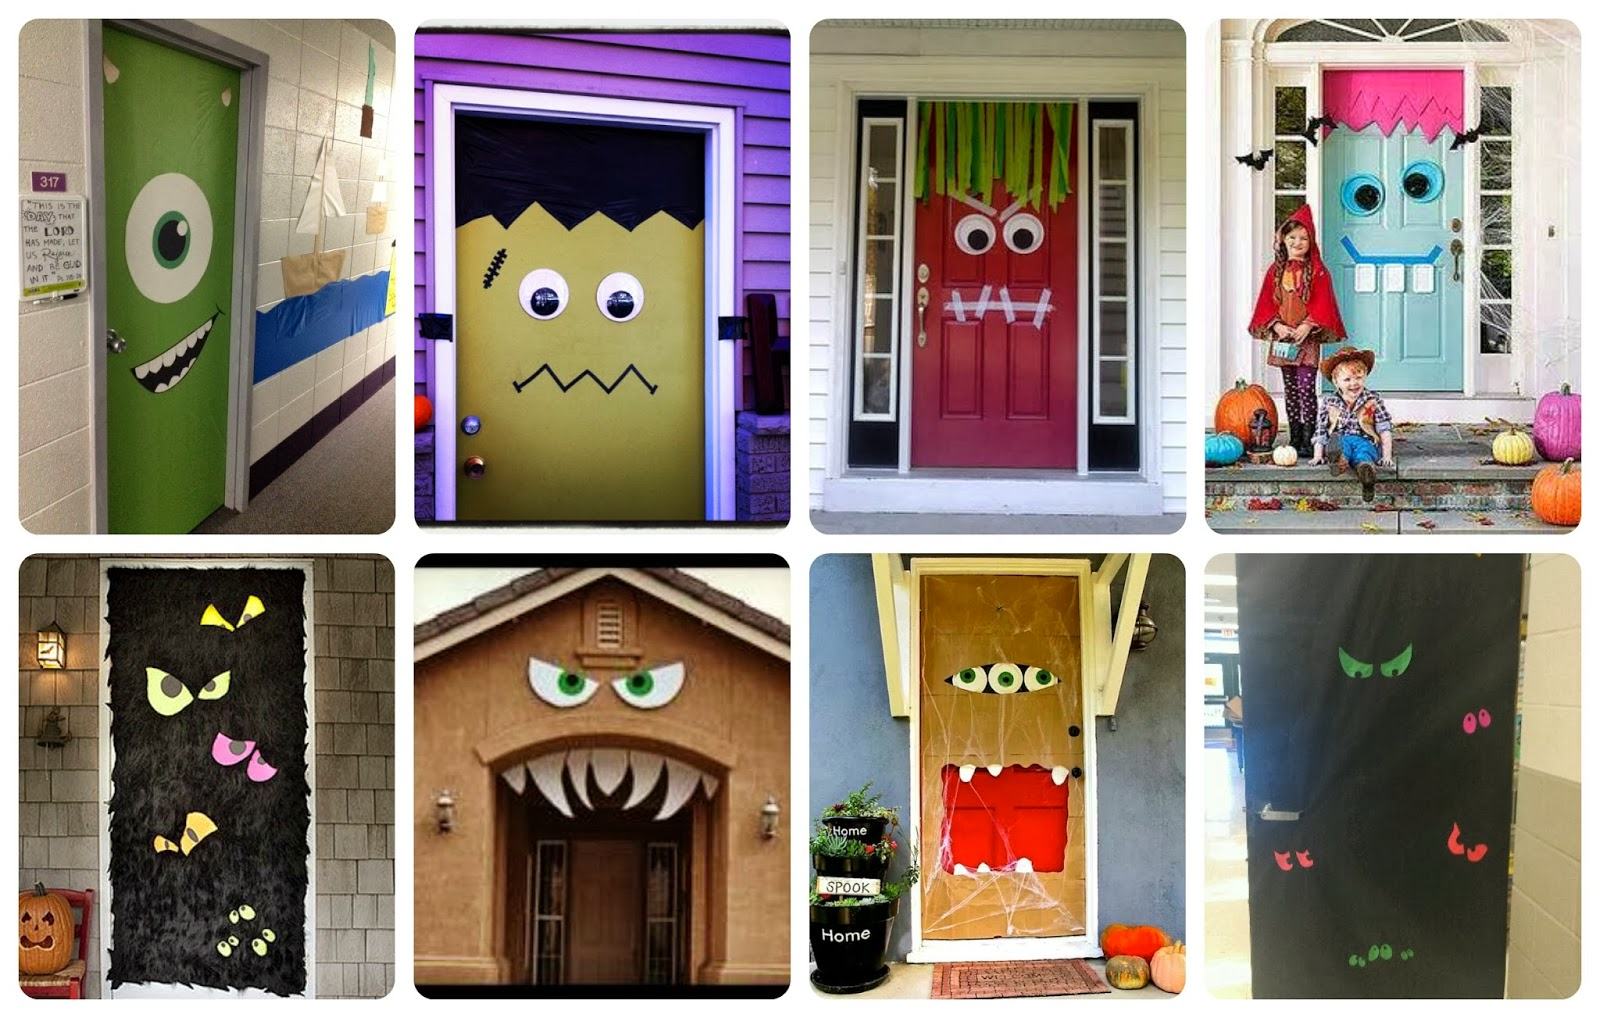 Recursos ideas para decorar en halloween lluvia de ideas for Decoracion puerta aula infantil